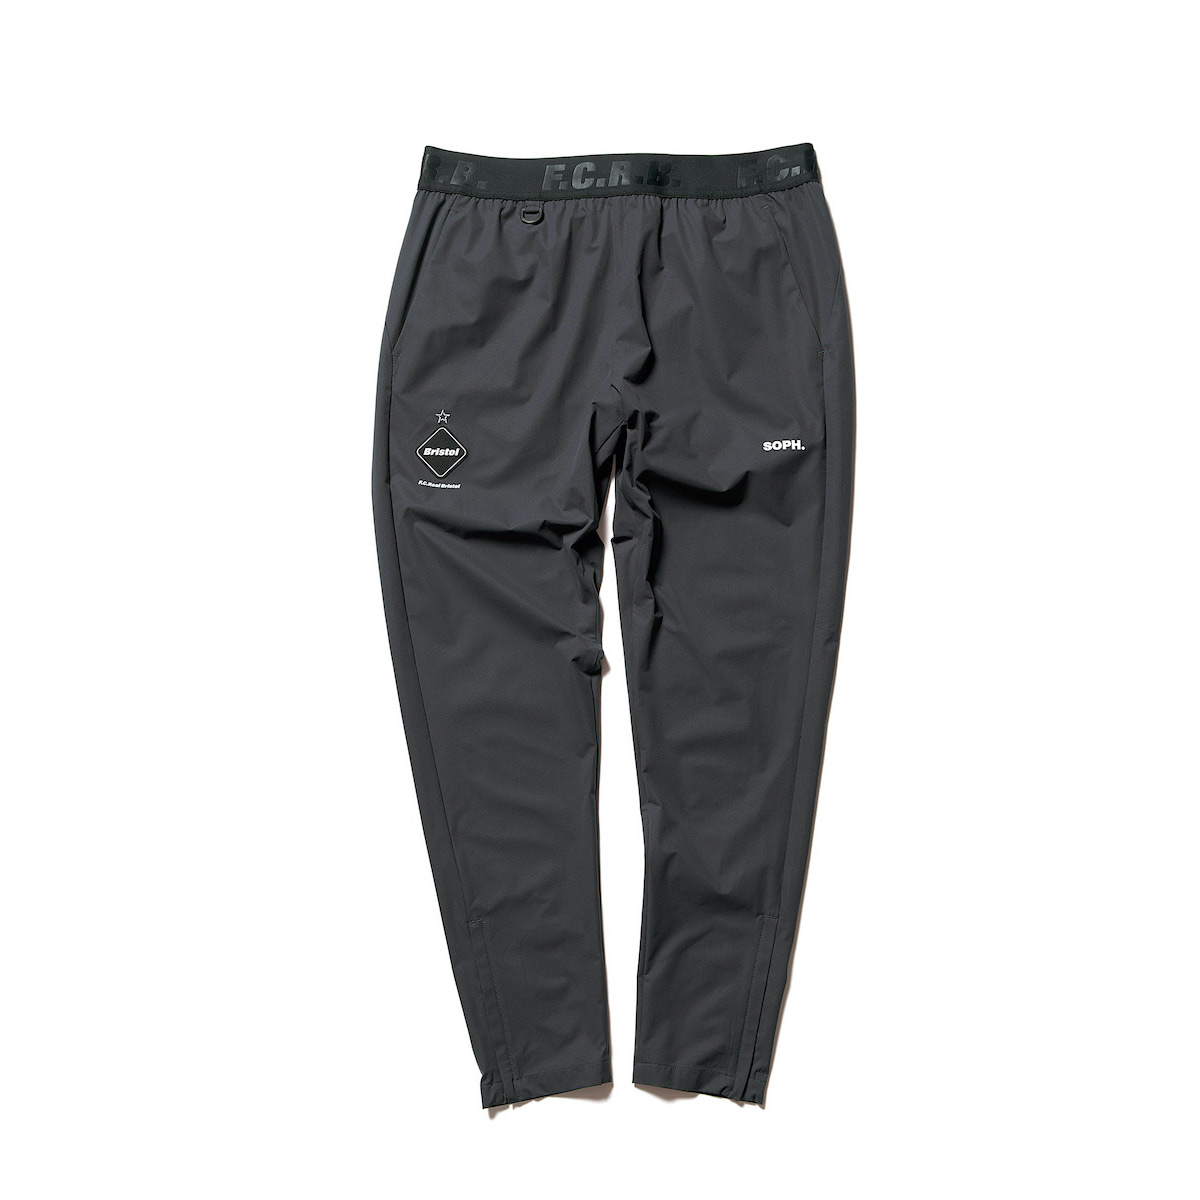 F.C.Real Bristol / STRETCH LIGHT WEIGHT EASY PANTS (Gray)